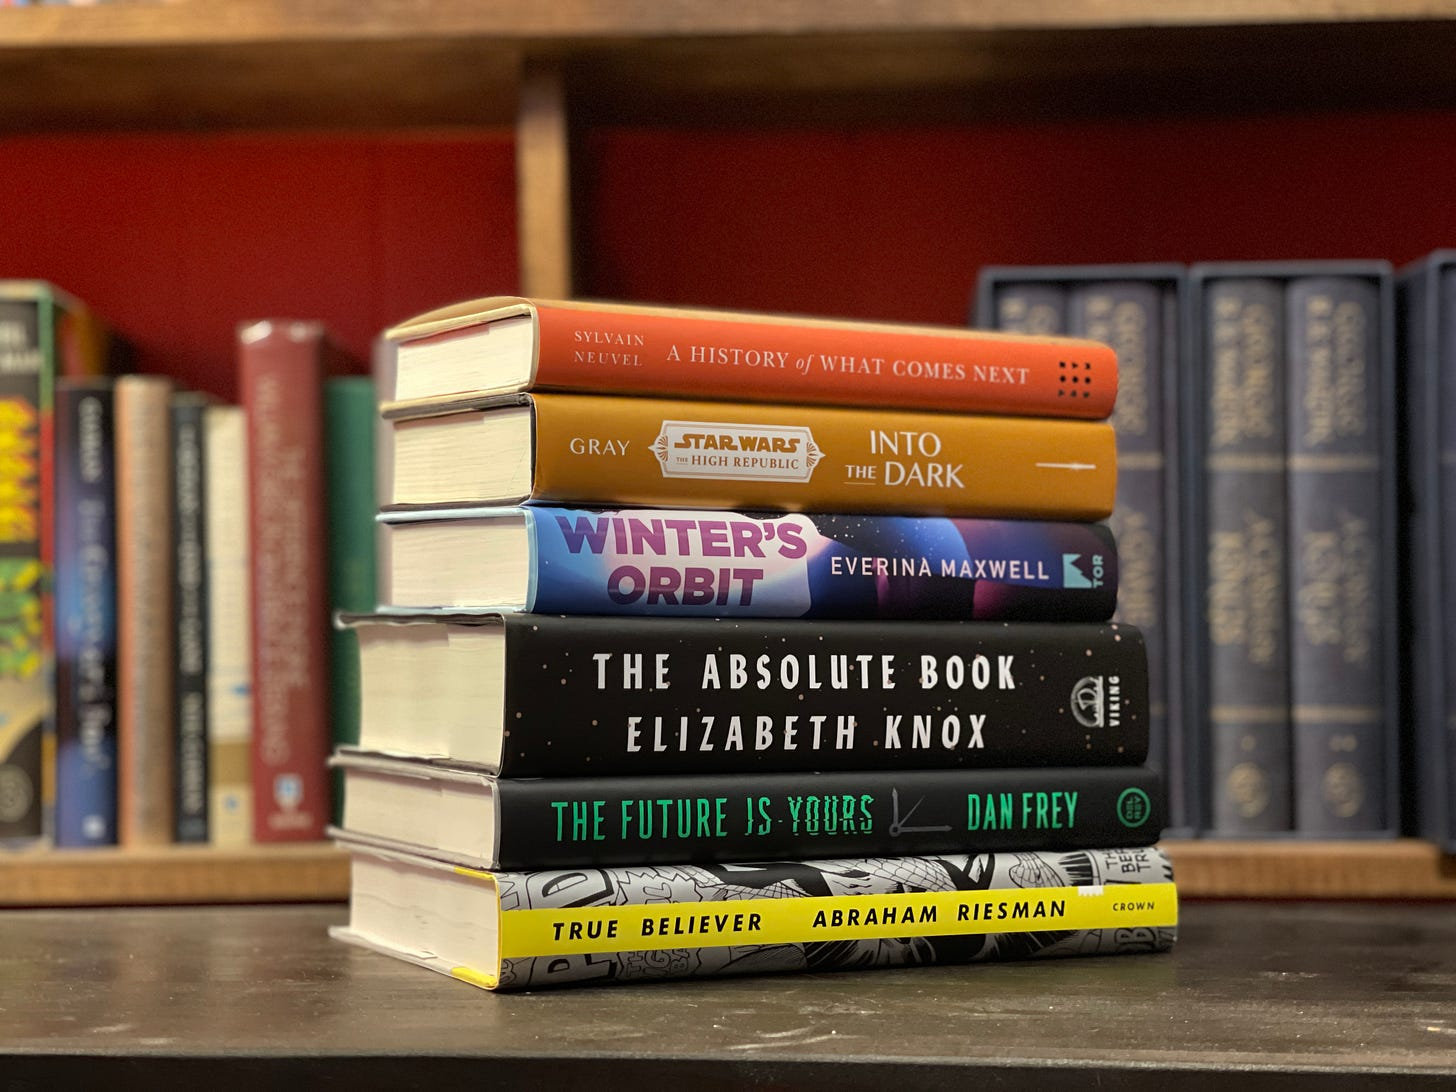 A colorful stack of books sits on a brown table, with a bookshelf in the background.